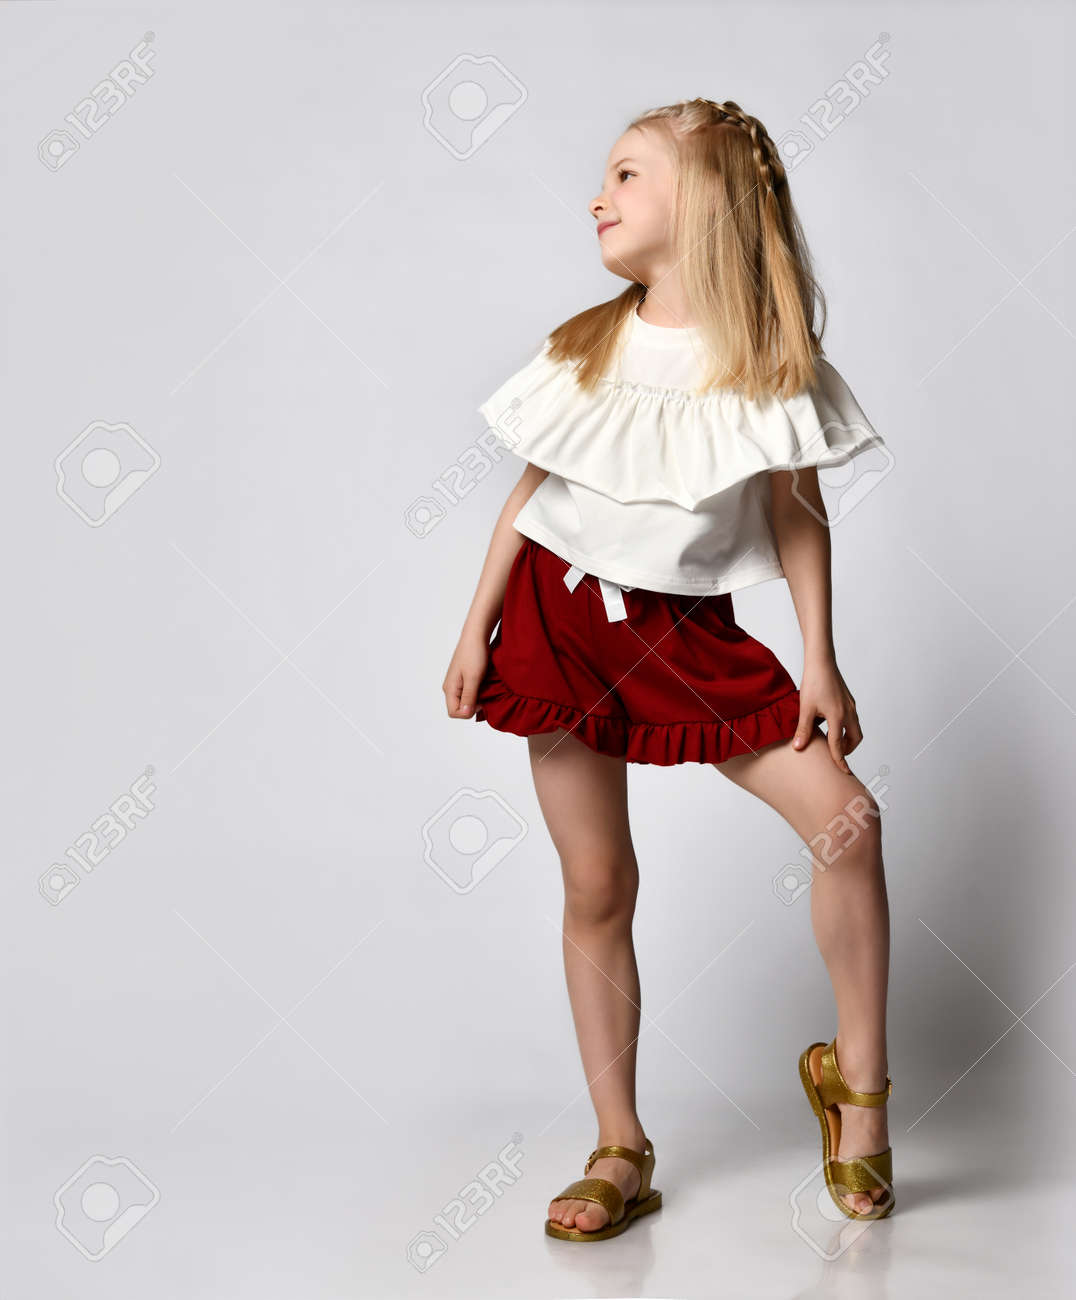 cute smiling little girl in a white blouse with ruffles, burgundy shorts and sandals, put her leg to the side - 169690048